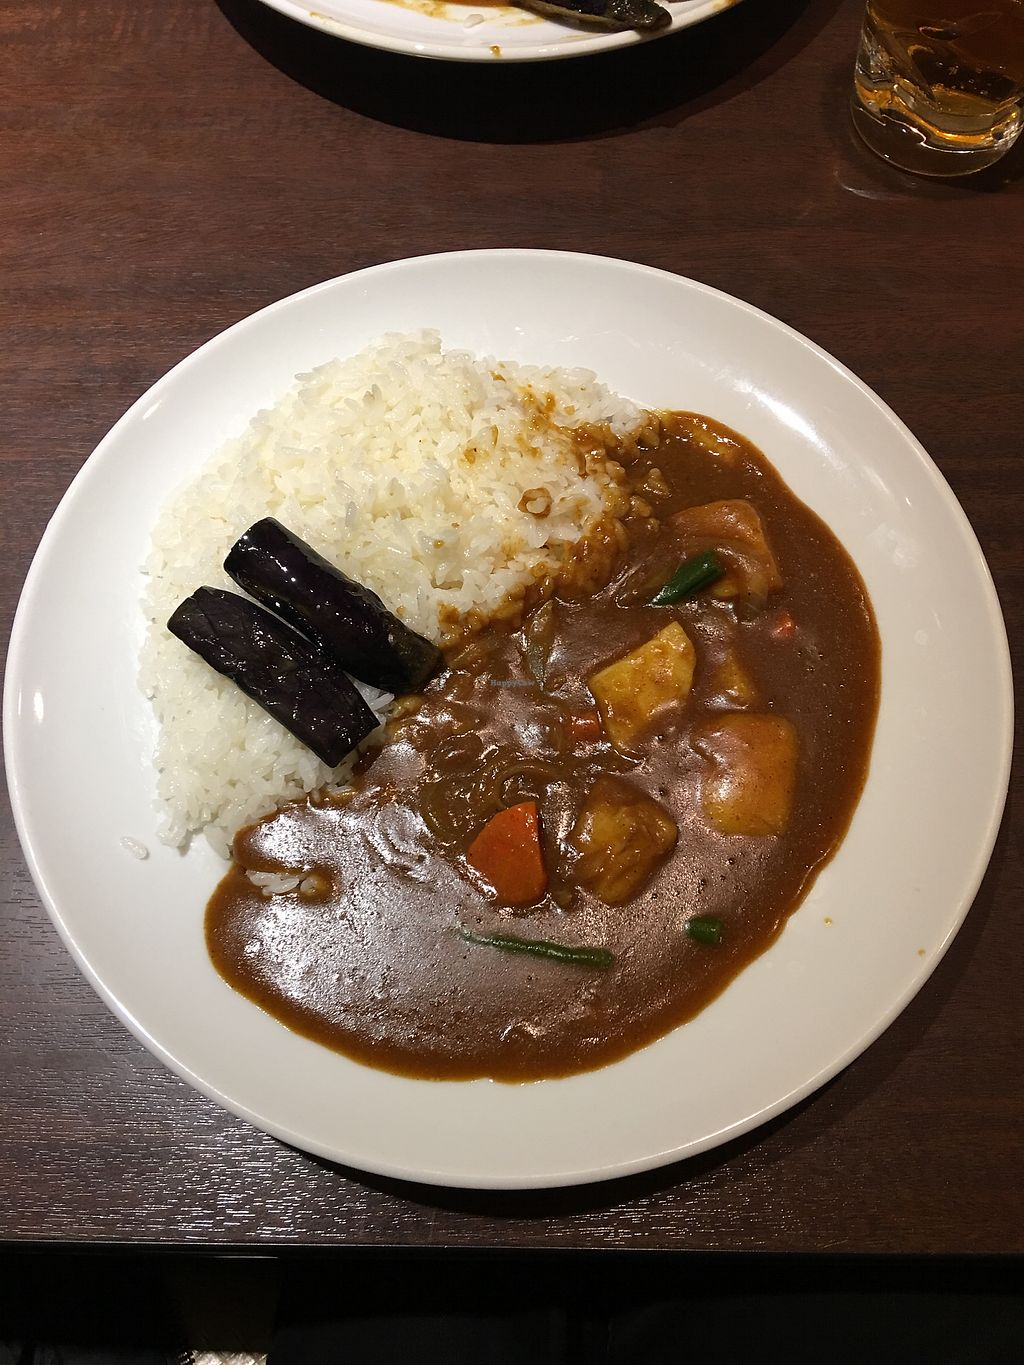 "Photo of CoCoIchi Curry House  by <a href=""/members/profile/raiu"">raiu</a> <br/>Vegetable curry <br/> December 6, 2017  - <a href='/contact/abuse/image/81094/332784'>Report</a>"